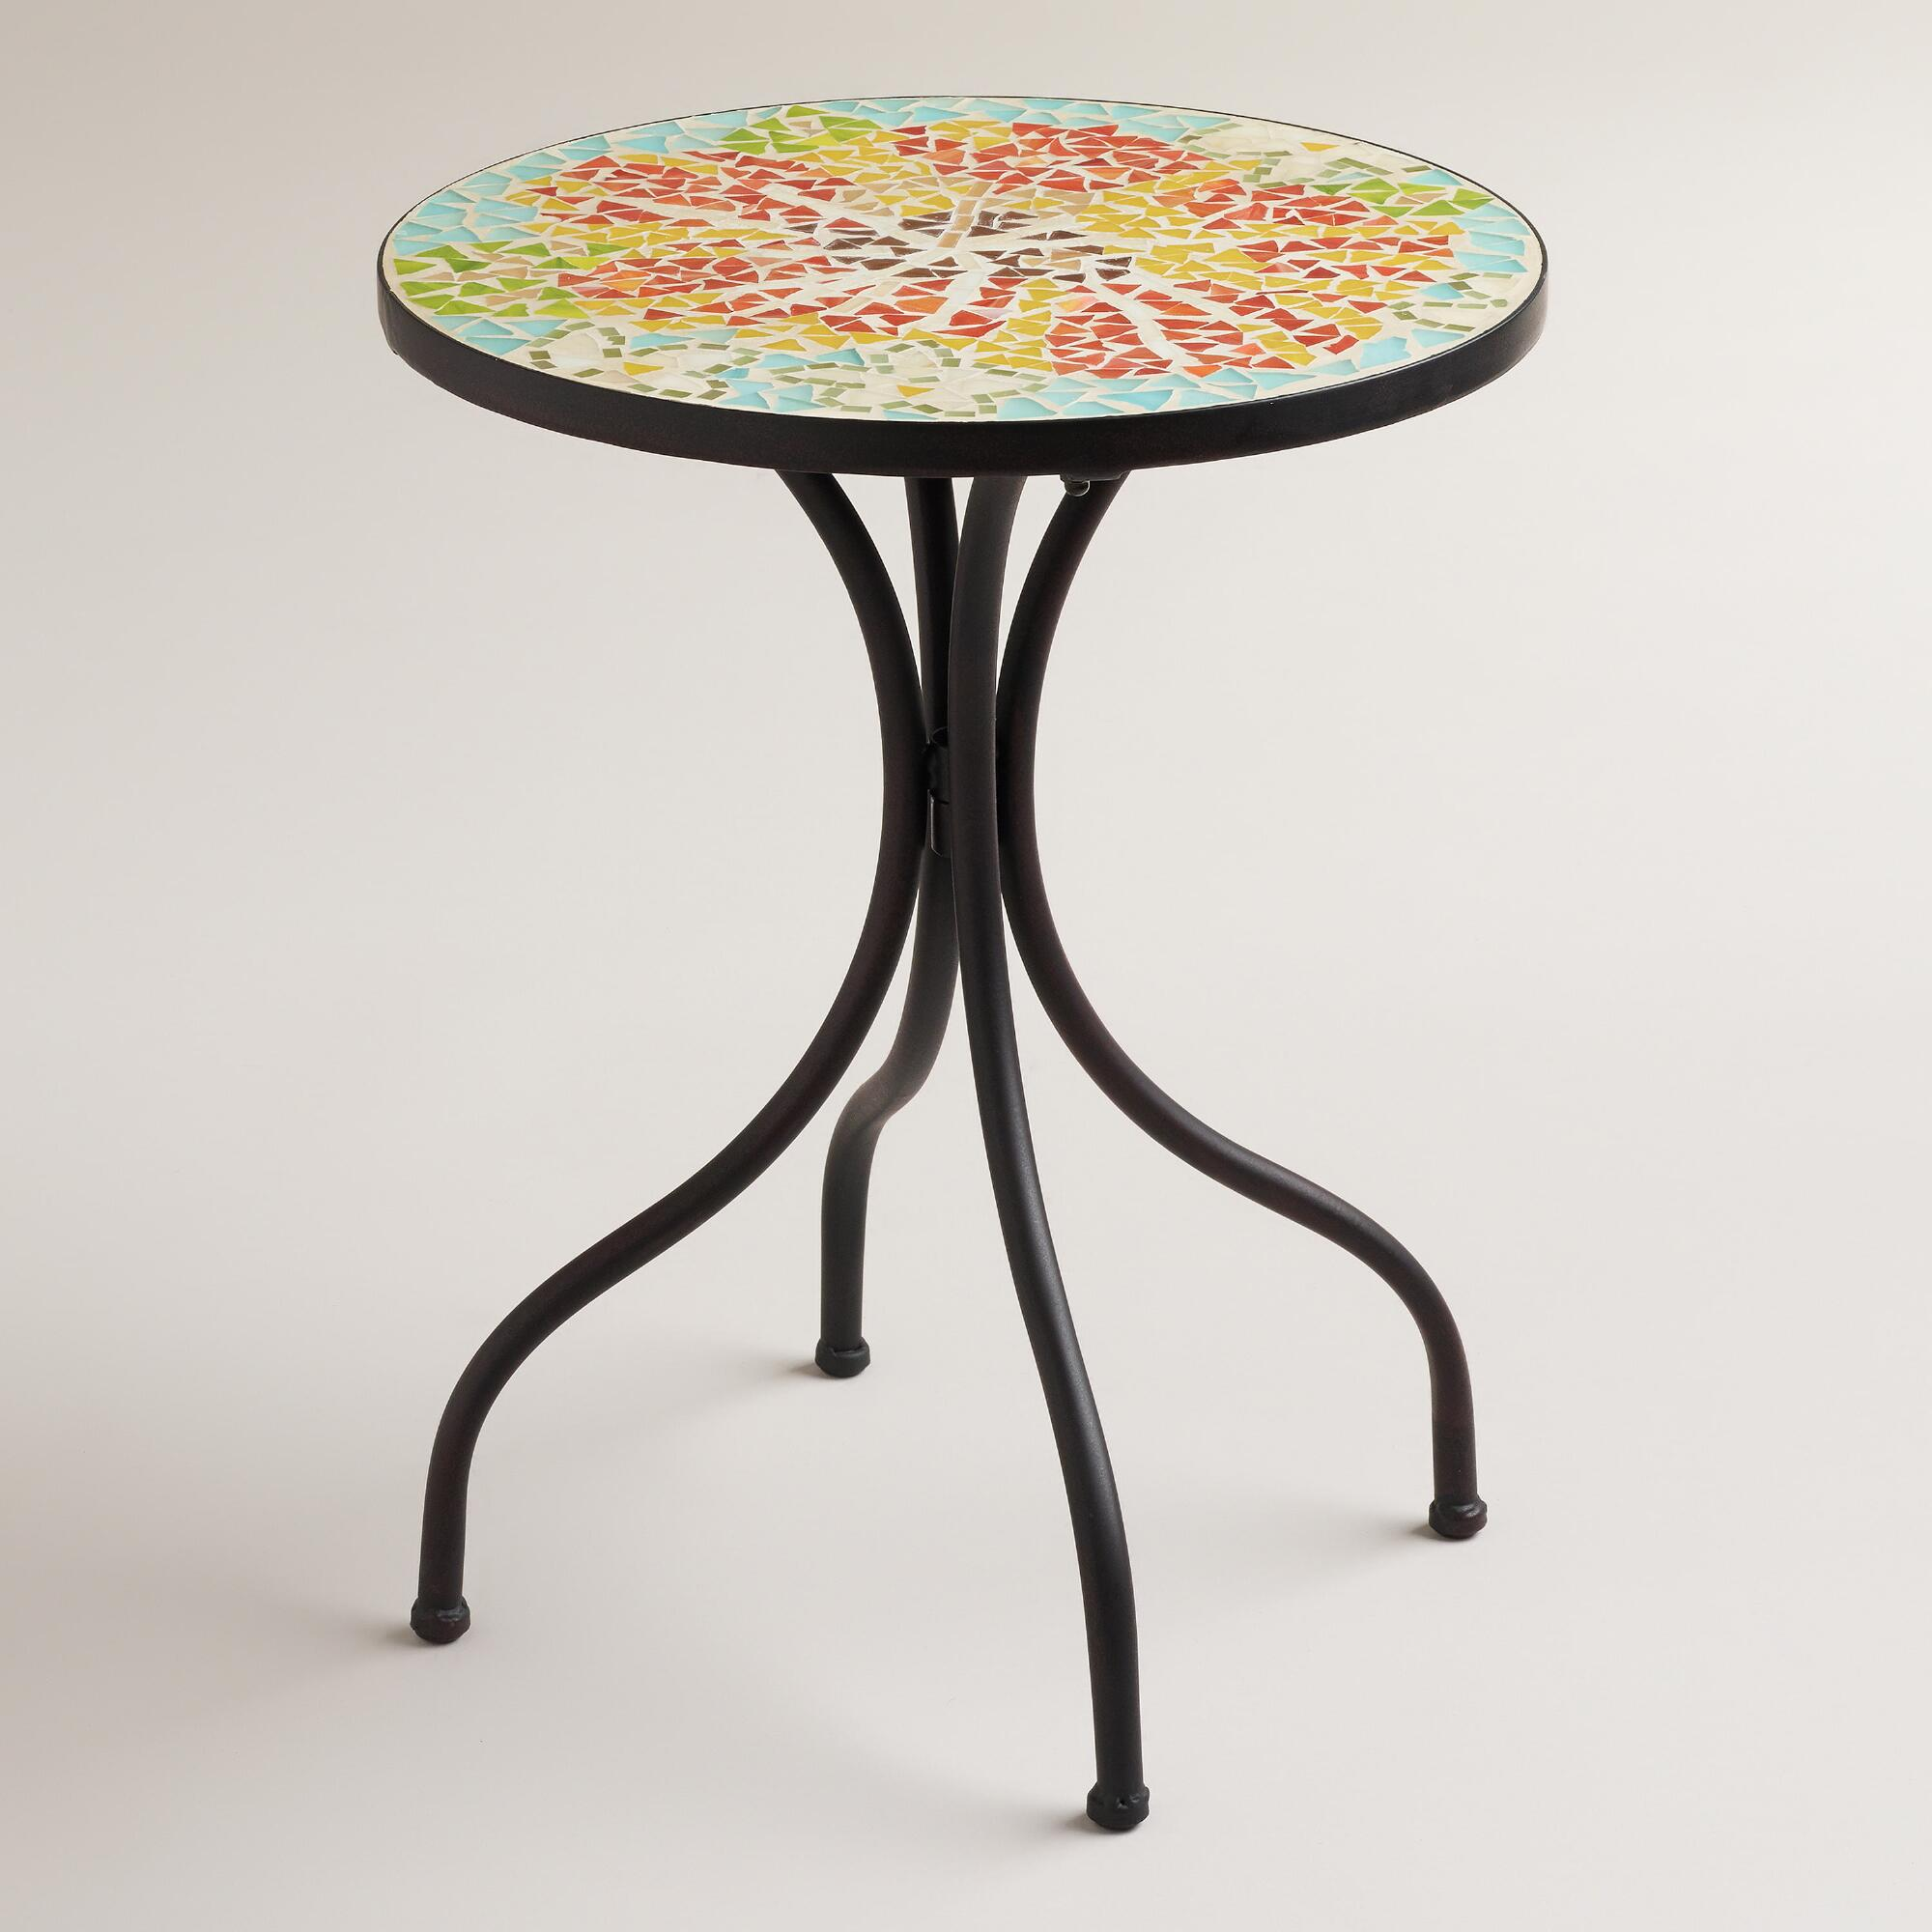 flower cadiz mosaic accent table world market gold outdoor sunflower outside grills target kitchen small corner end glass dining and chairs clearance counter high west elm morten